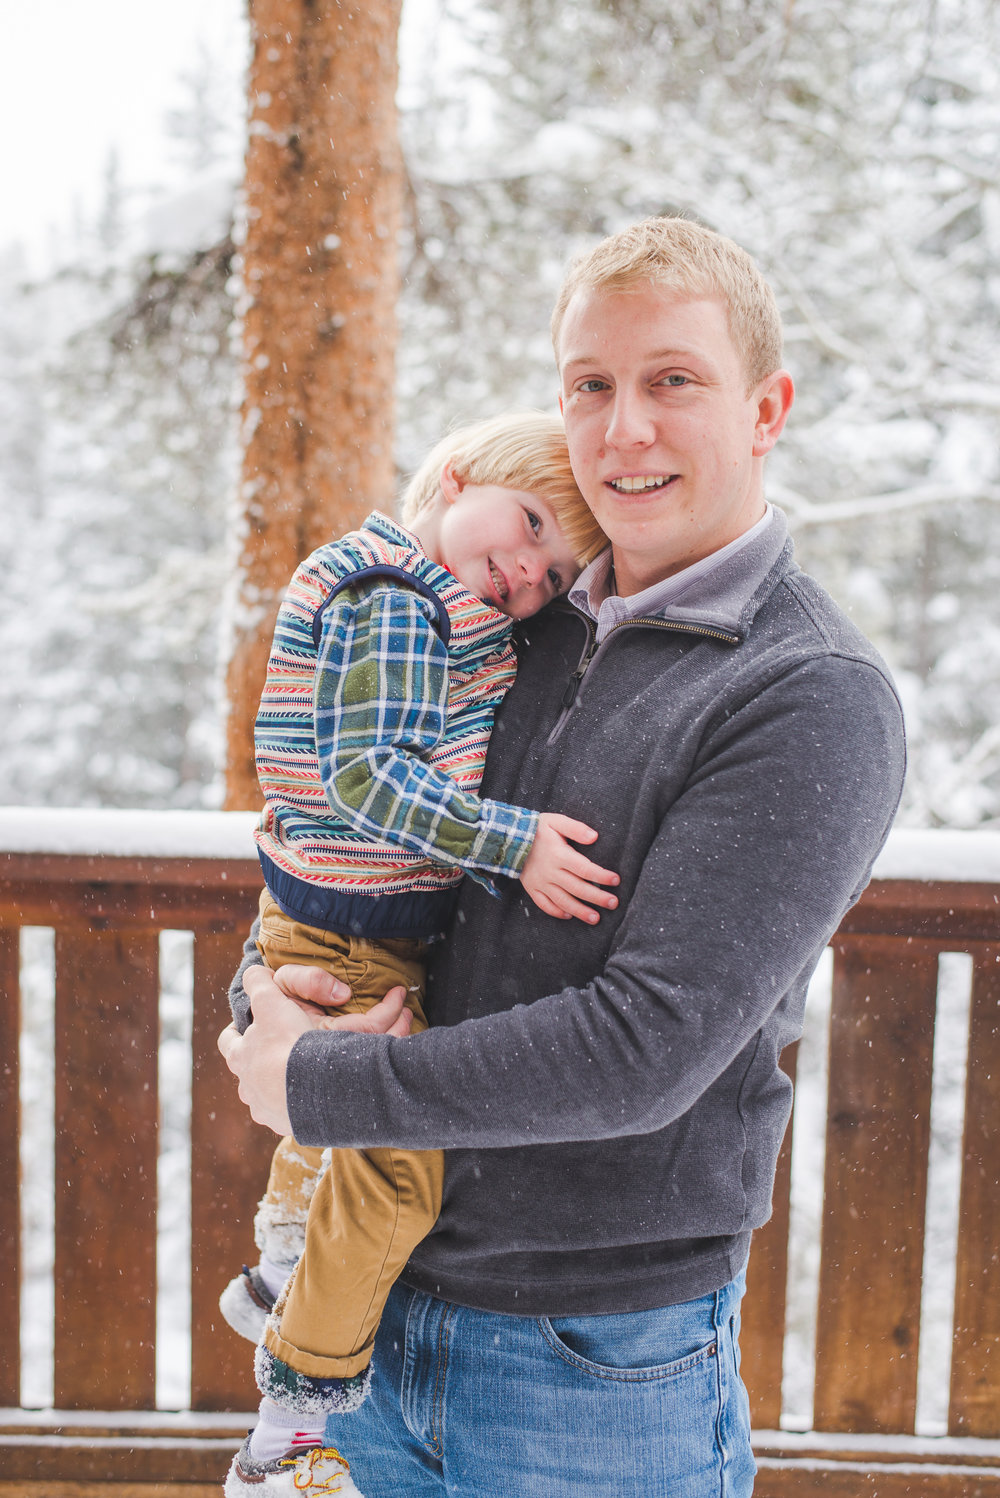 dad gets a little smile out of his son for their winter family photo shoot in Breckenridge, Colorado